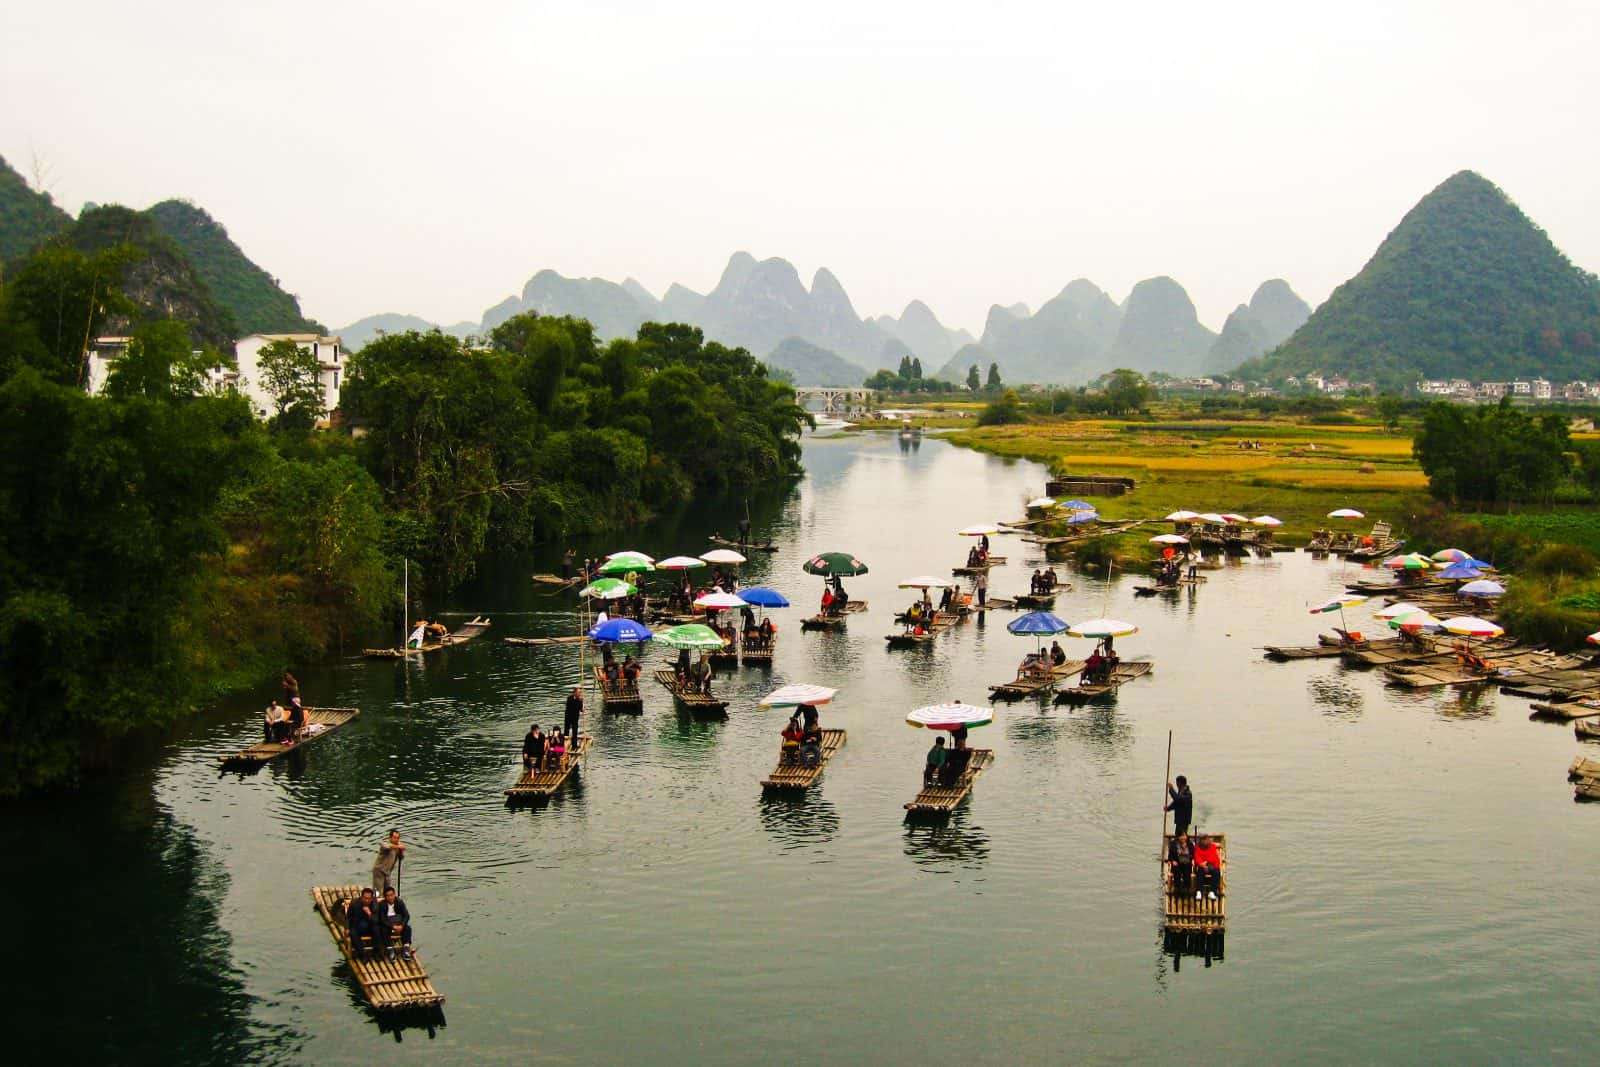 Yulong River, China